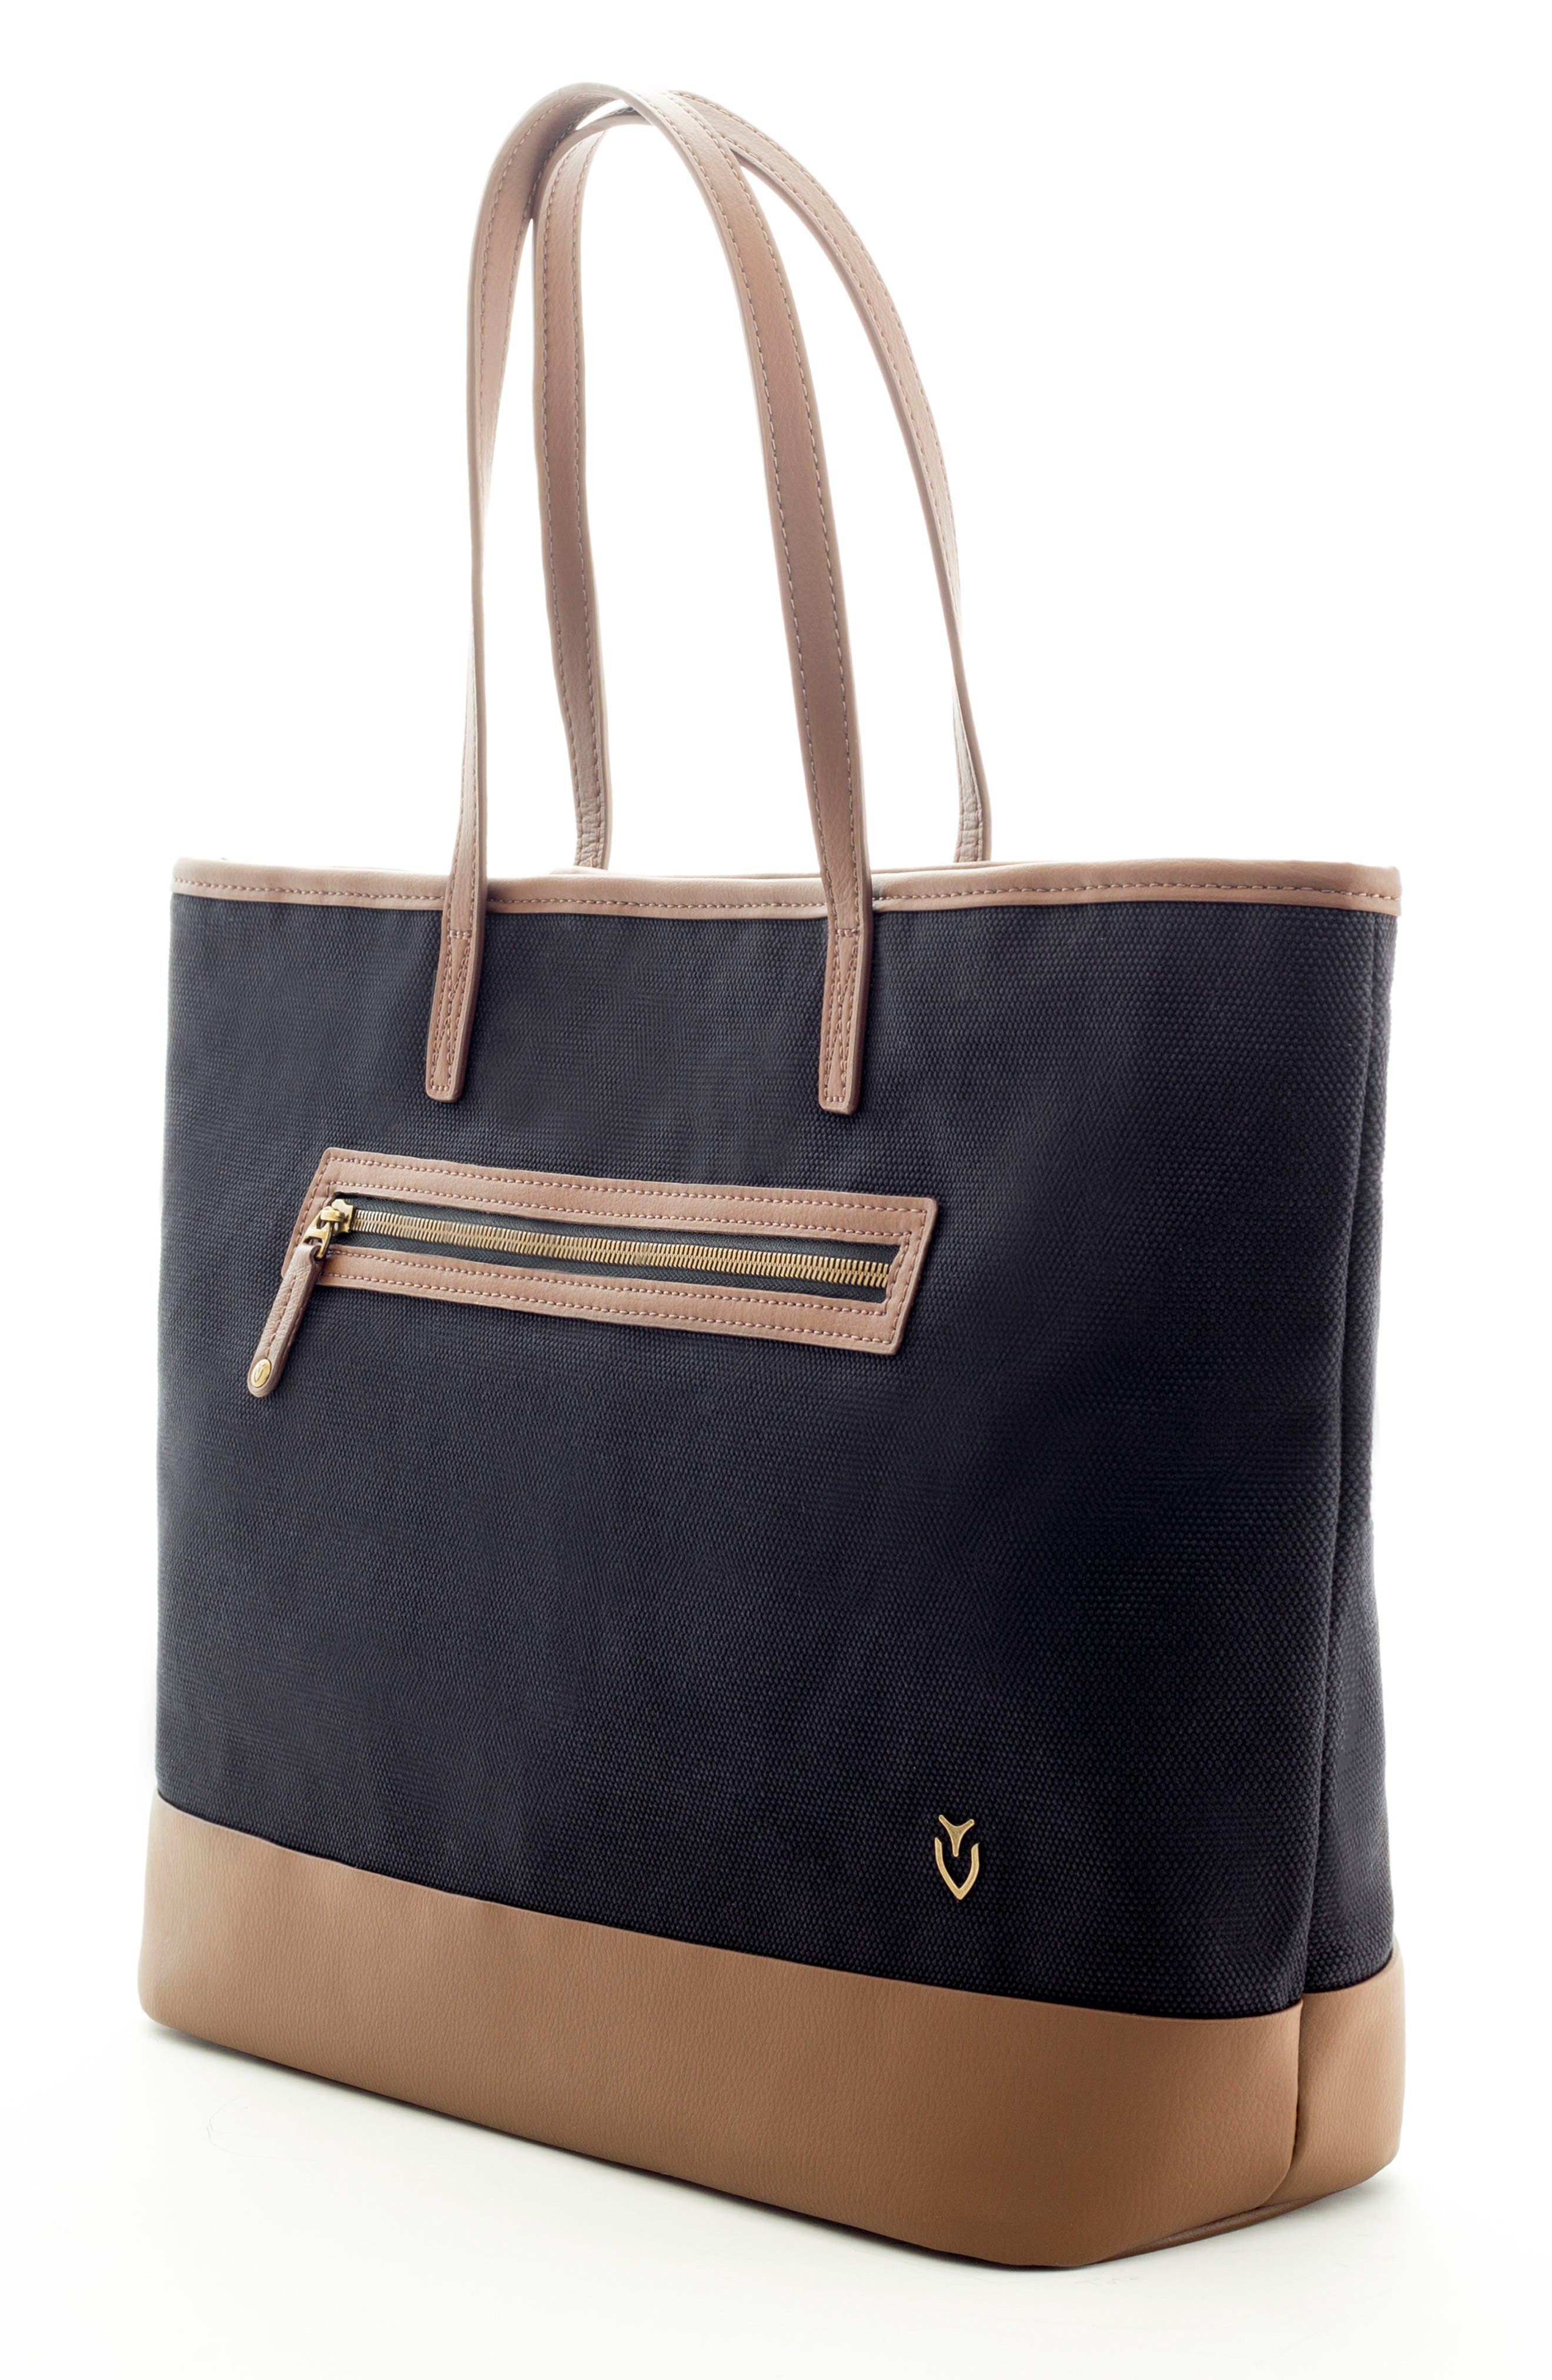 Refined Tote Bag,                             Alternate thumbnail 3, color,                             001